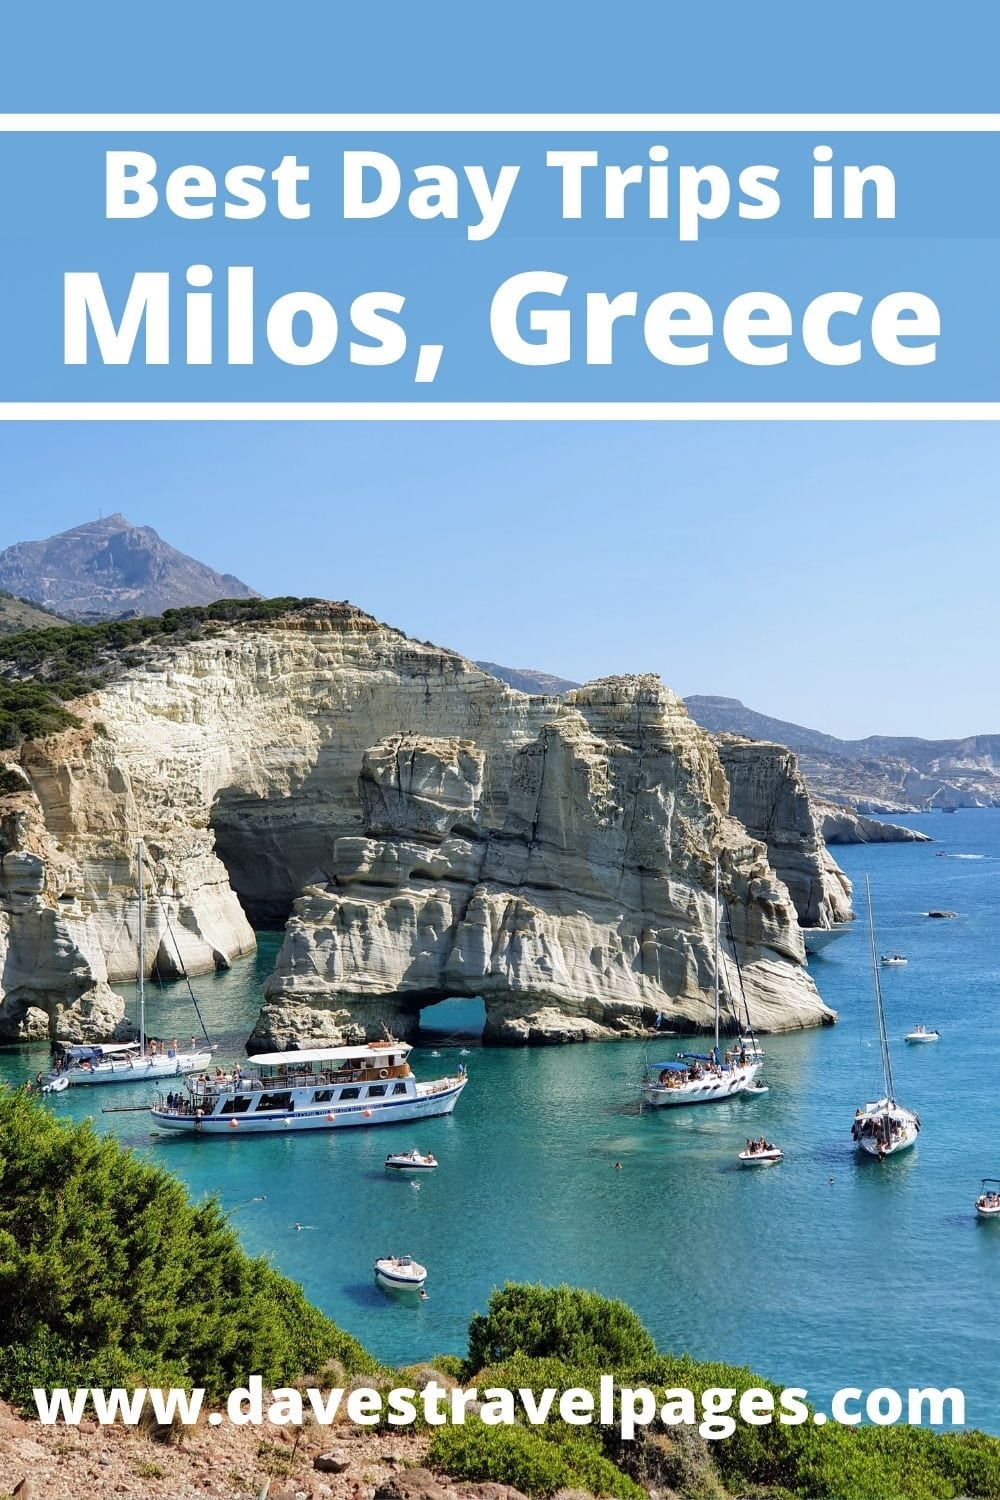 A guide to the best day trips in Milos Greece